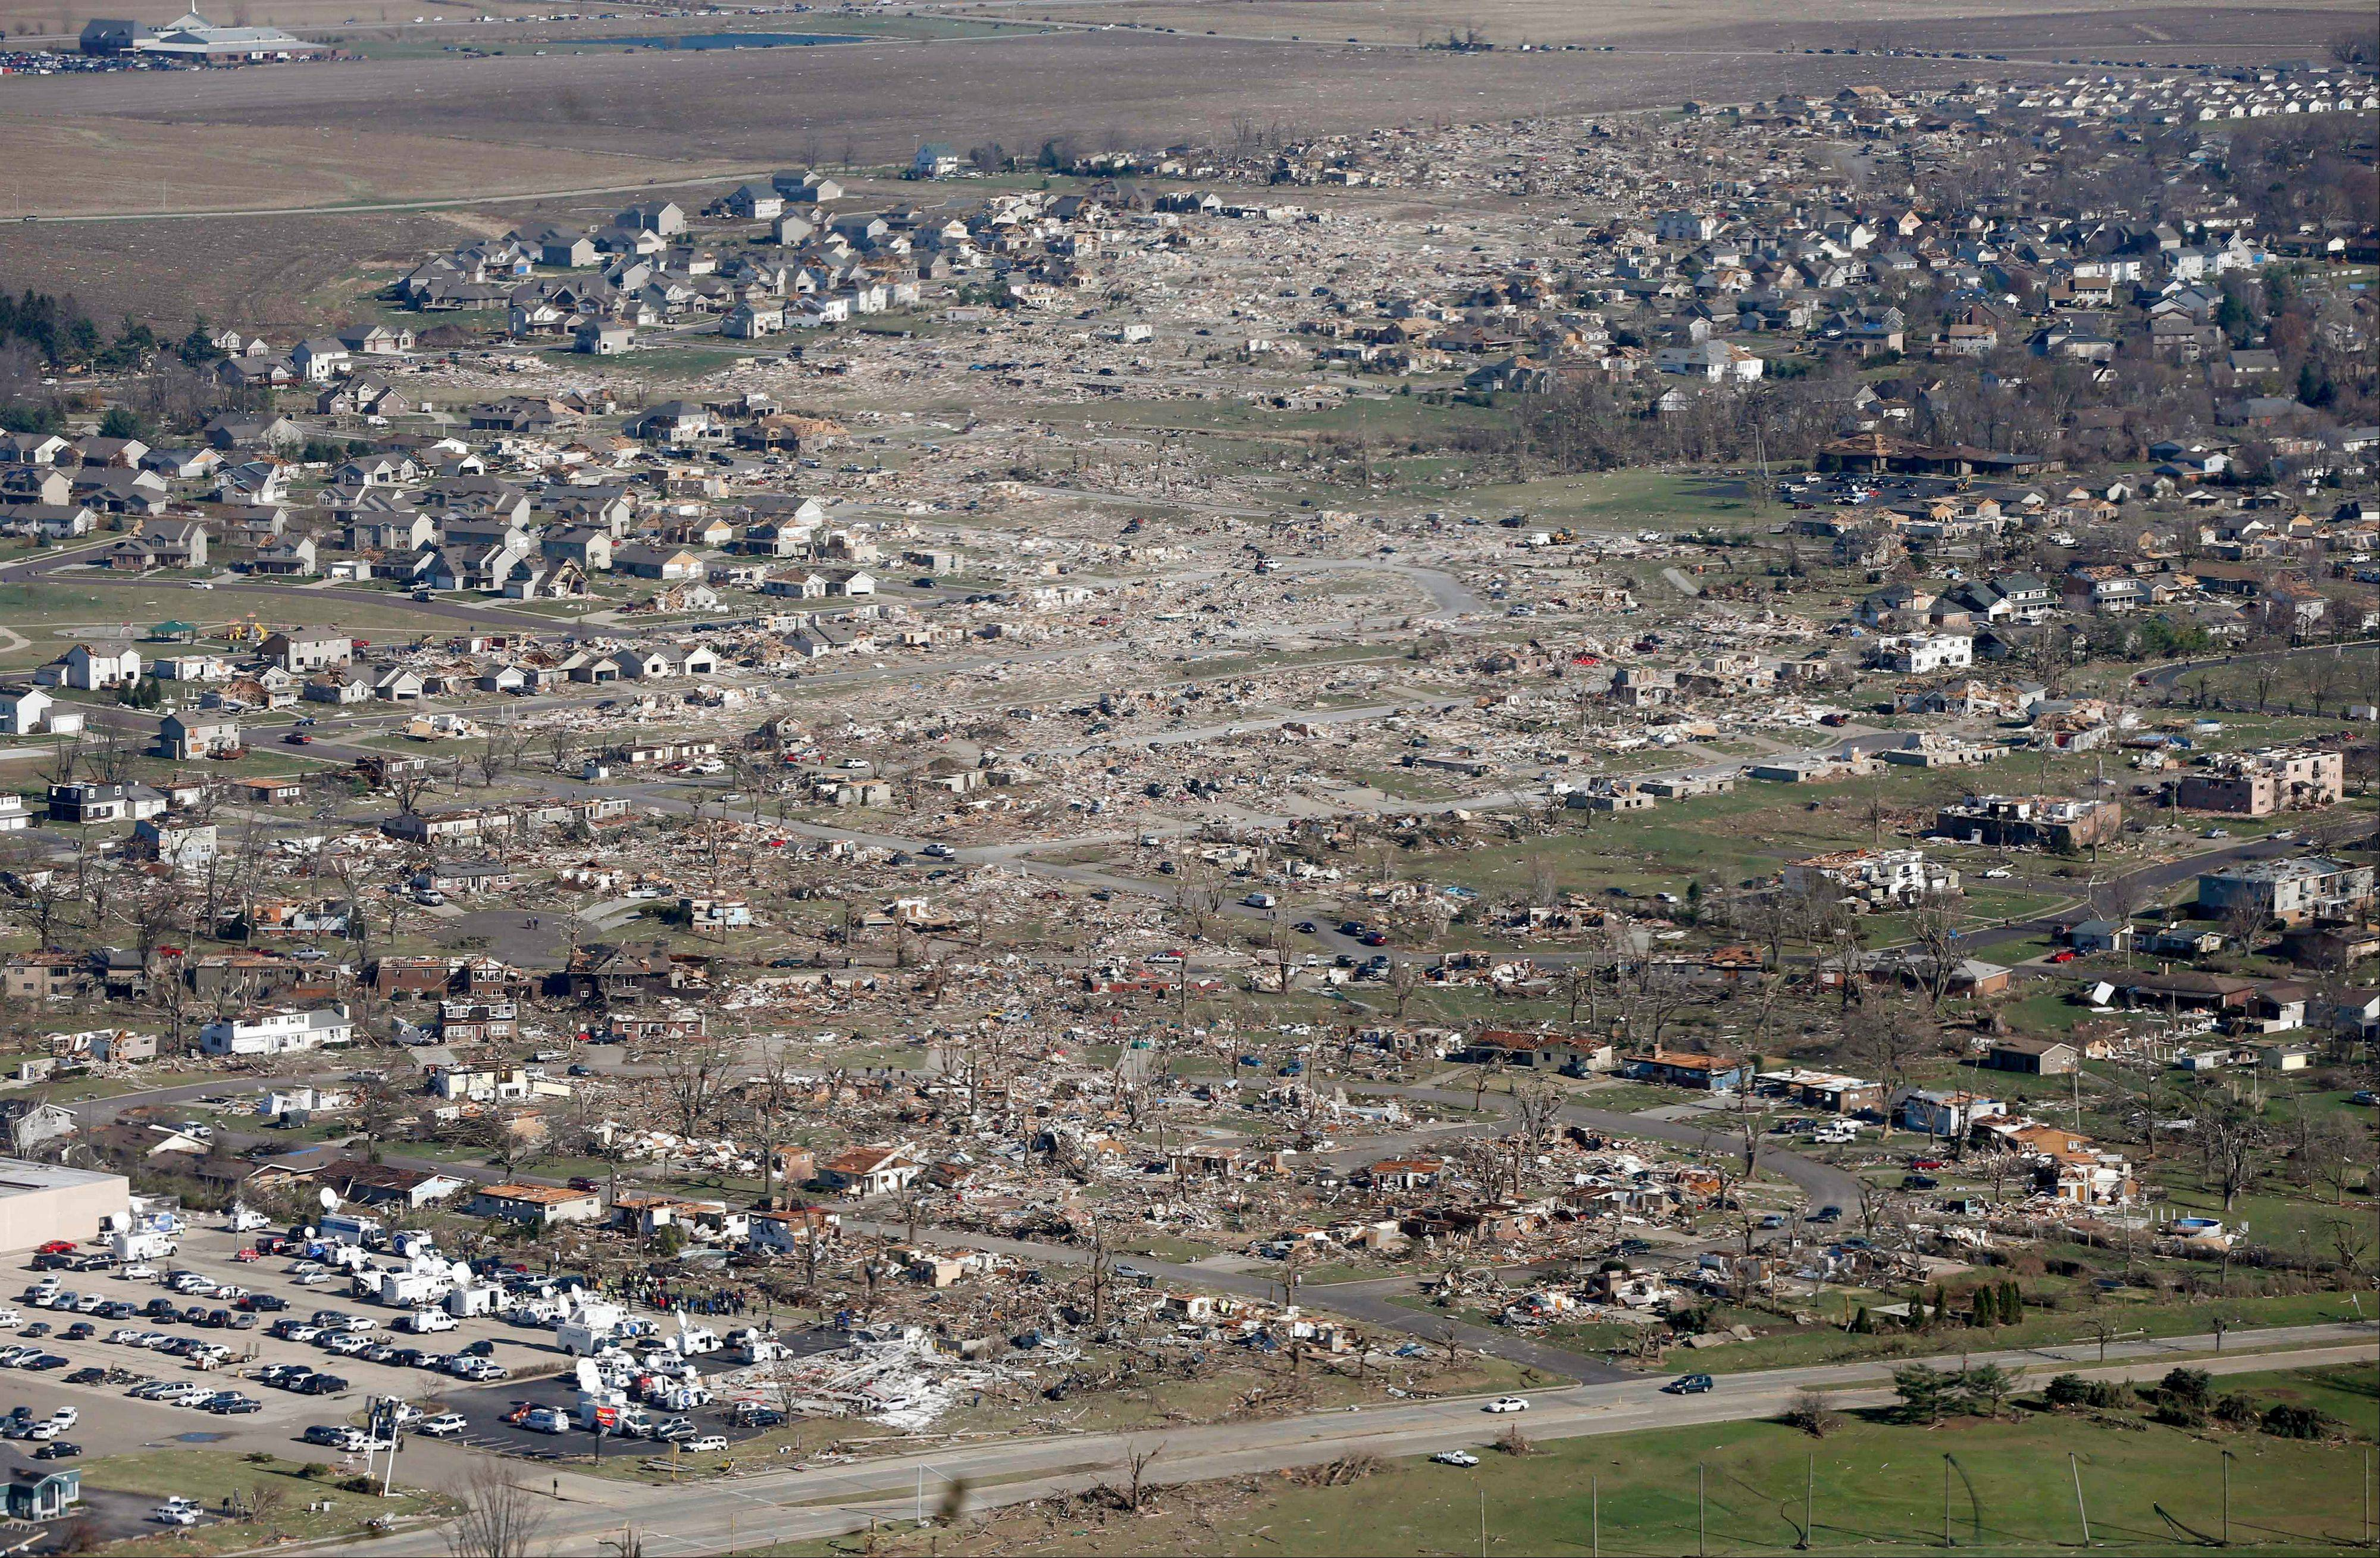 This aerial view on Monday, Nov. 18, 2013, shows the path of a tornado that hit the western Illinois town of Washington on Sunday. It was one of the worst-hit areas after intense storms and tornadoes swept through Illinois. The National Weather Service says the tornado that hit Washington had a preliminary rating of EF-4, meaning wind speeds of 170 mph to 190 mph.